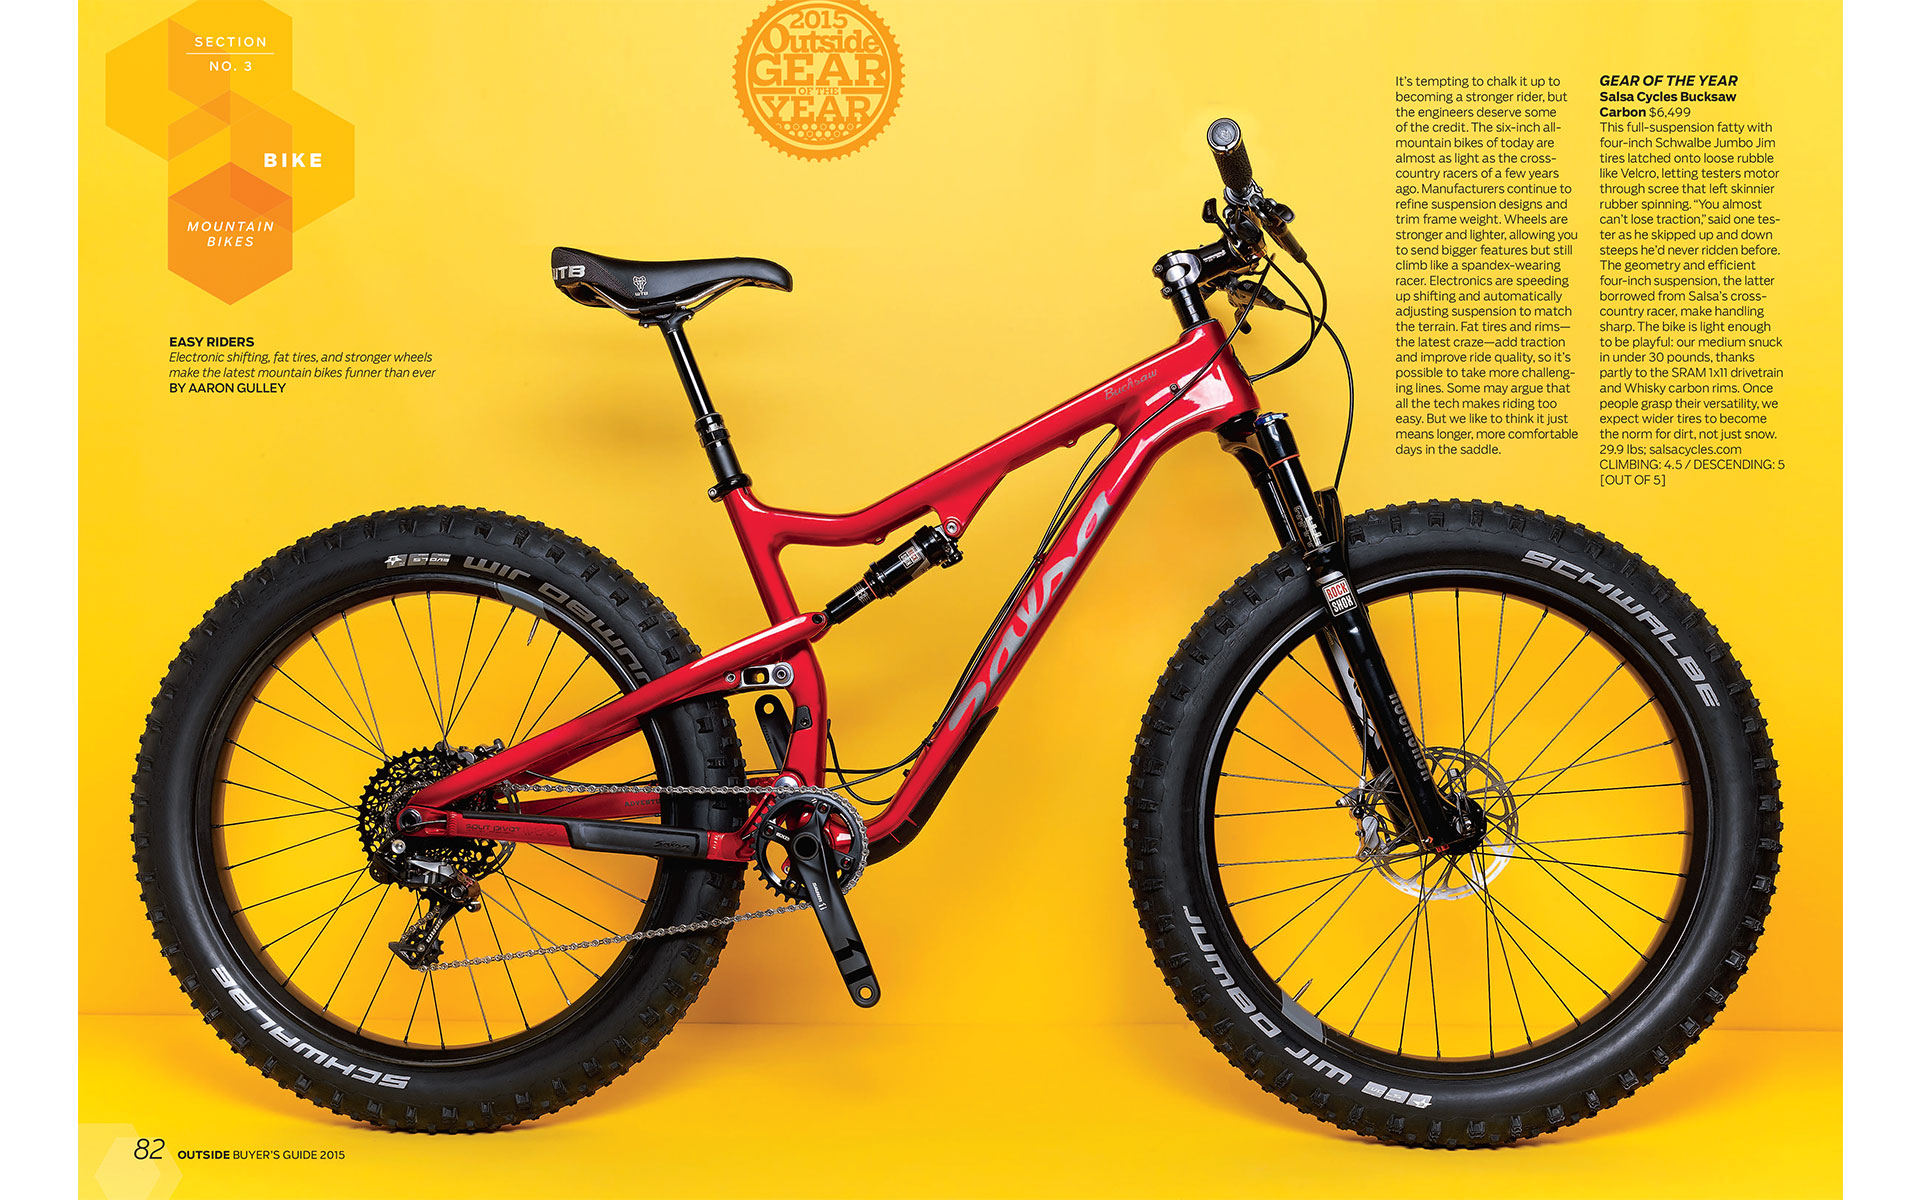 "<p style=""text-align: center;""><b><font color=""2a2871"">Outside, Summer Buyers Guide</font></b>